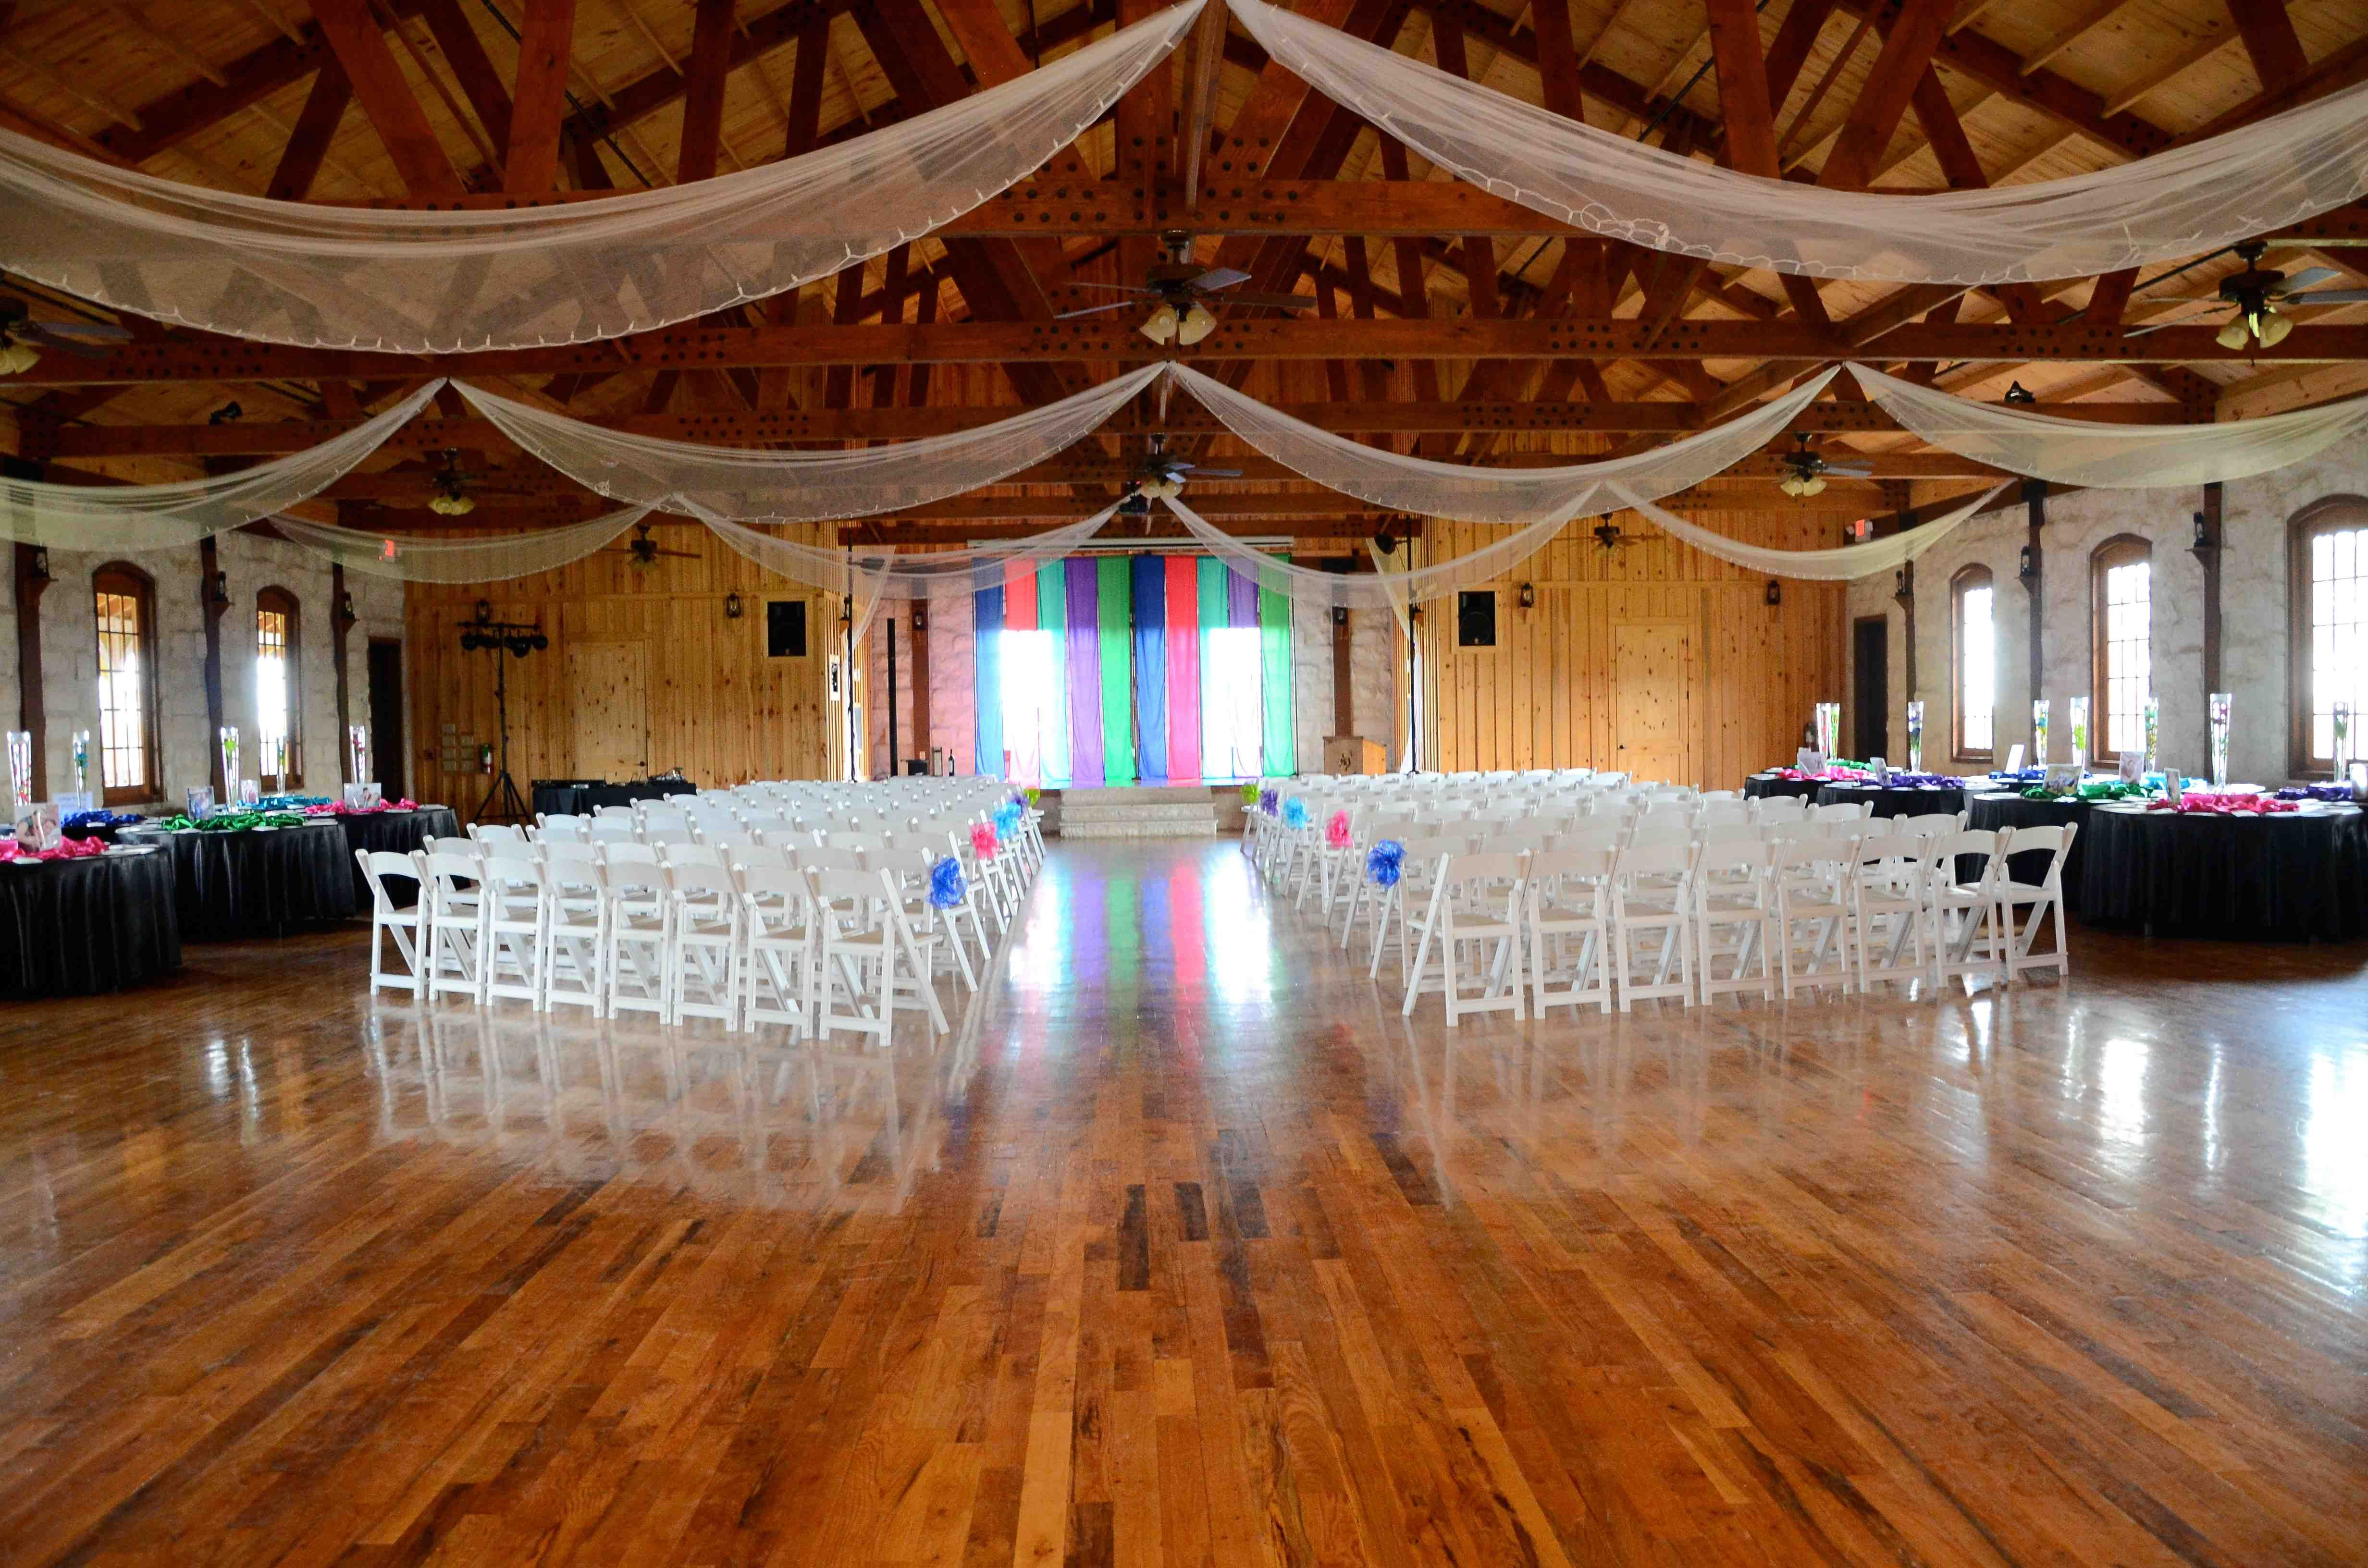 Ceremony Between Reception: Ceremony And Reception In Same Room Idea